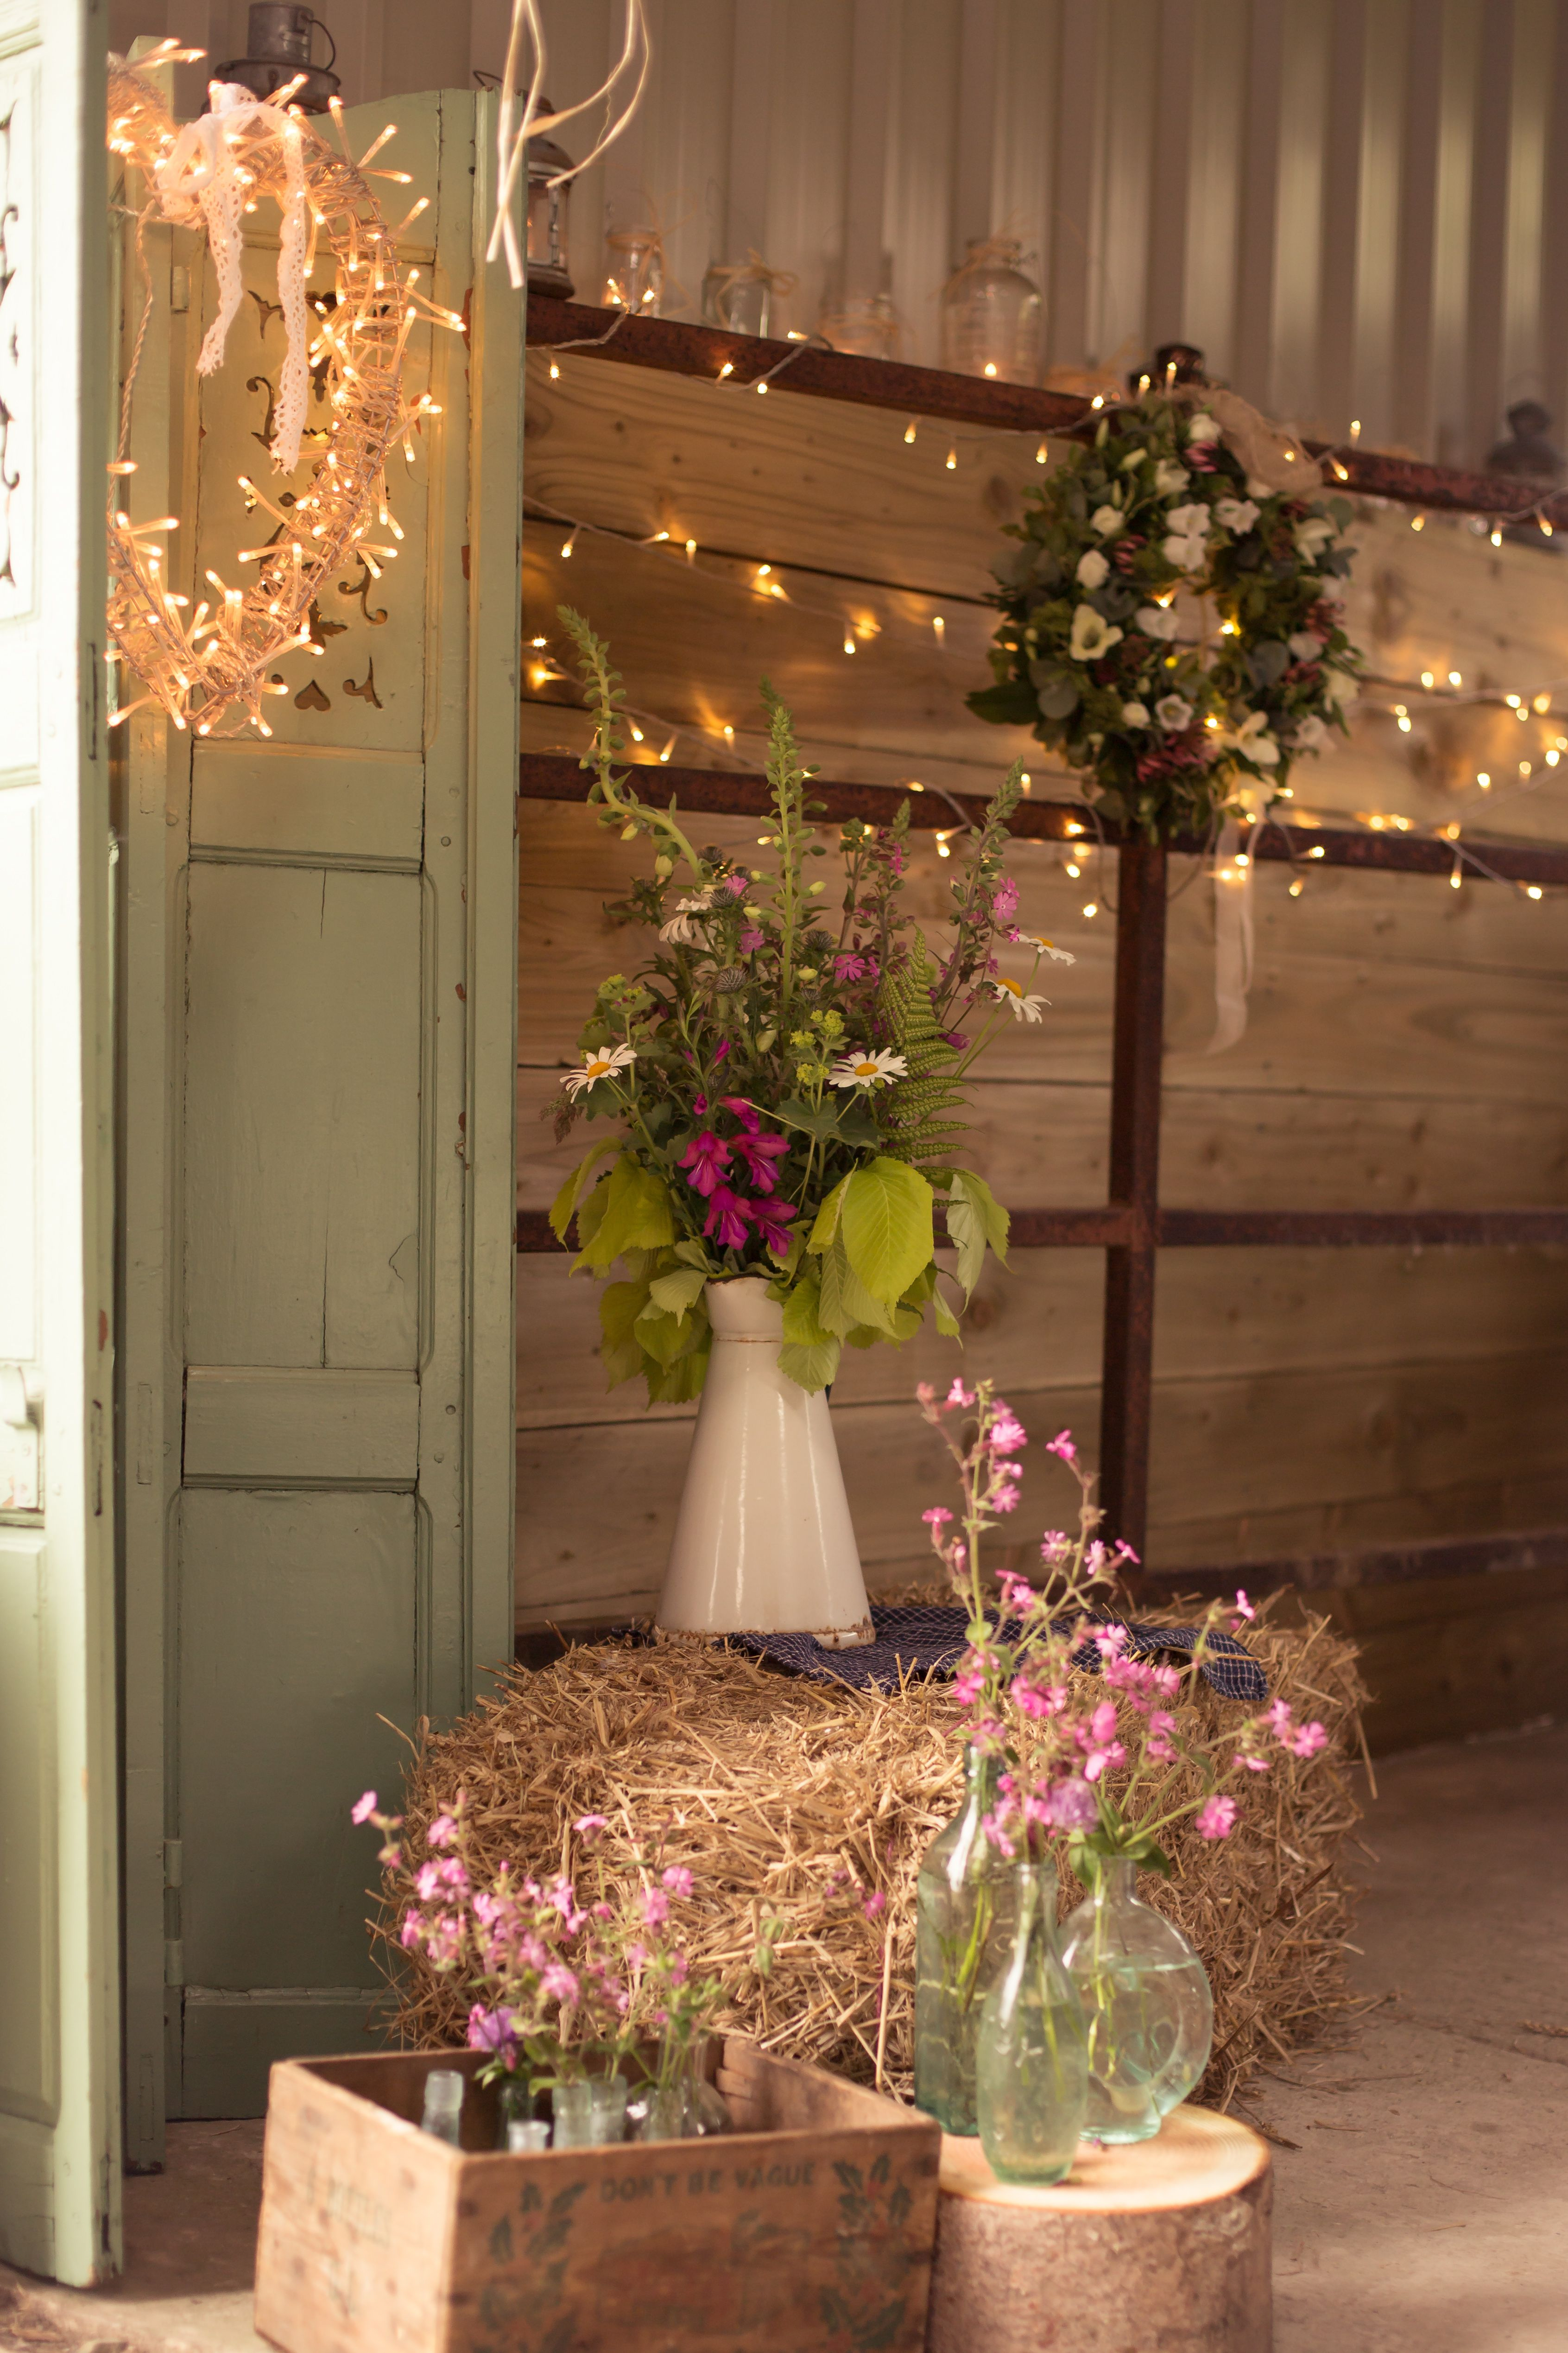 Fairy lights in a barn with rustic decoration barn wedding ideas fairy lights in a barn with rustic decoration barn wedding ideas from propfactory junglespirit Choice Image